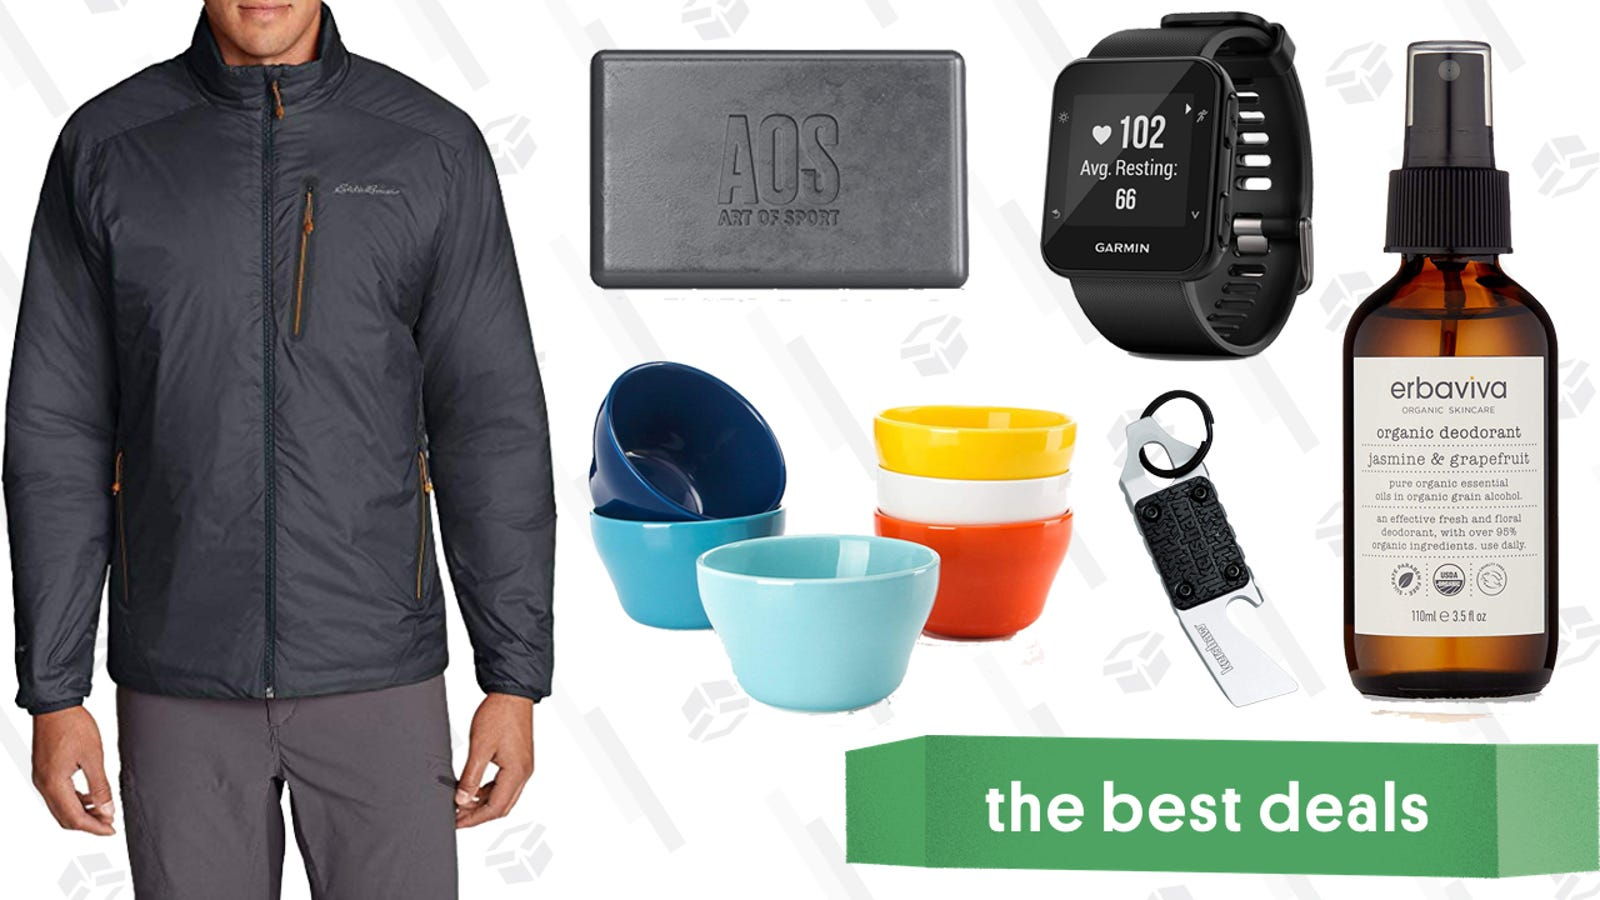 Saturday's Best Deals: Philips OneBlade, Eddie Bauer, Indie Beauty, and More